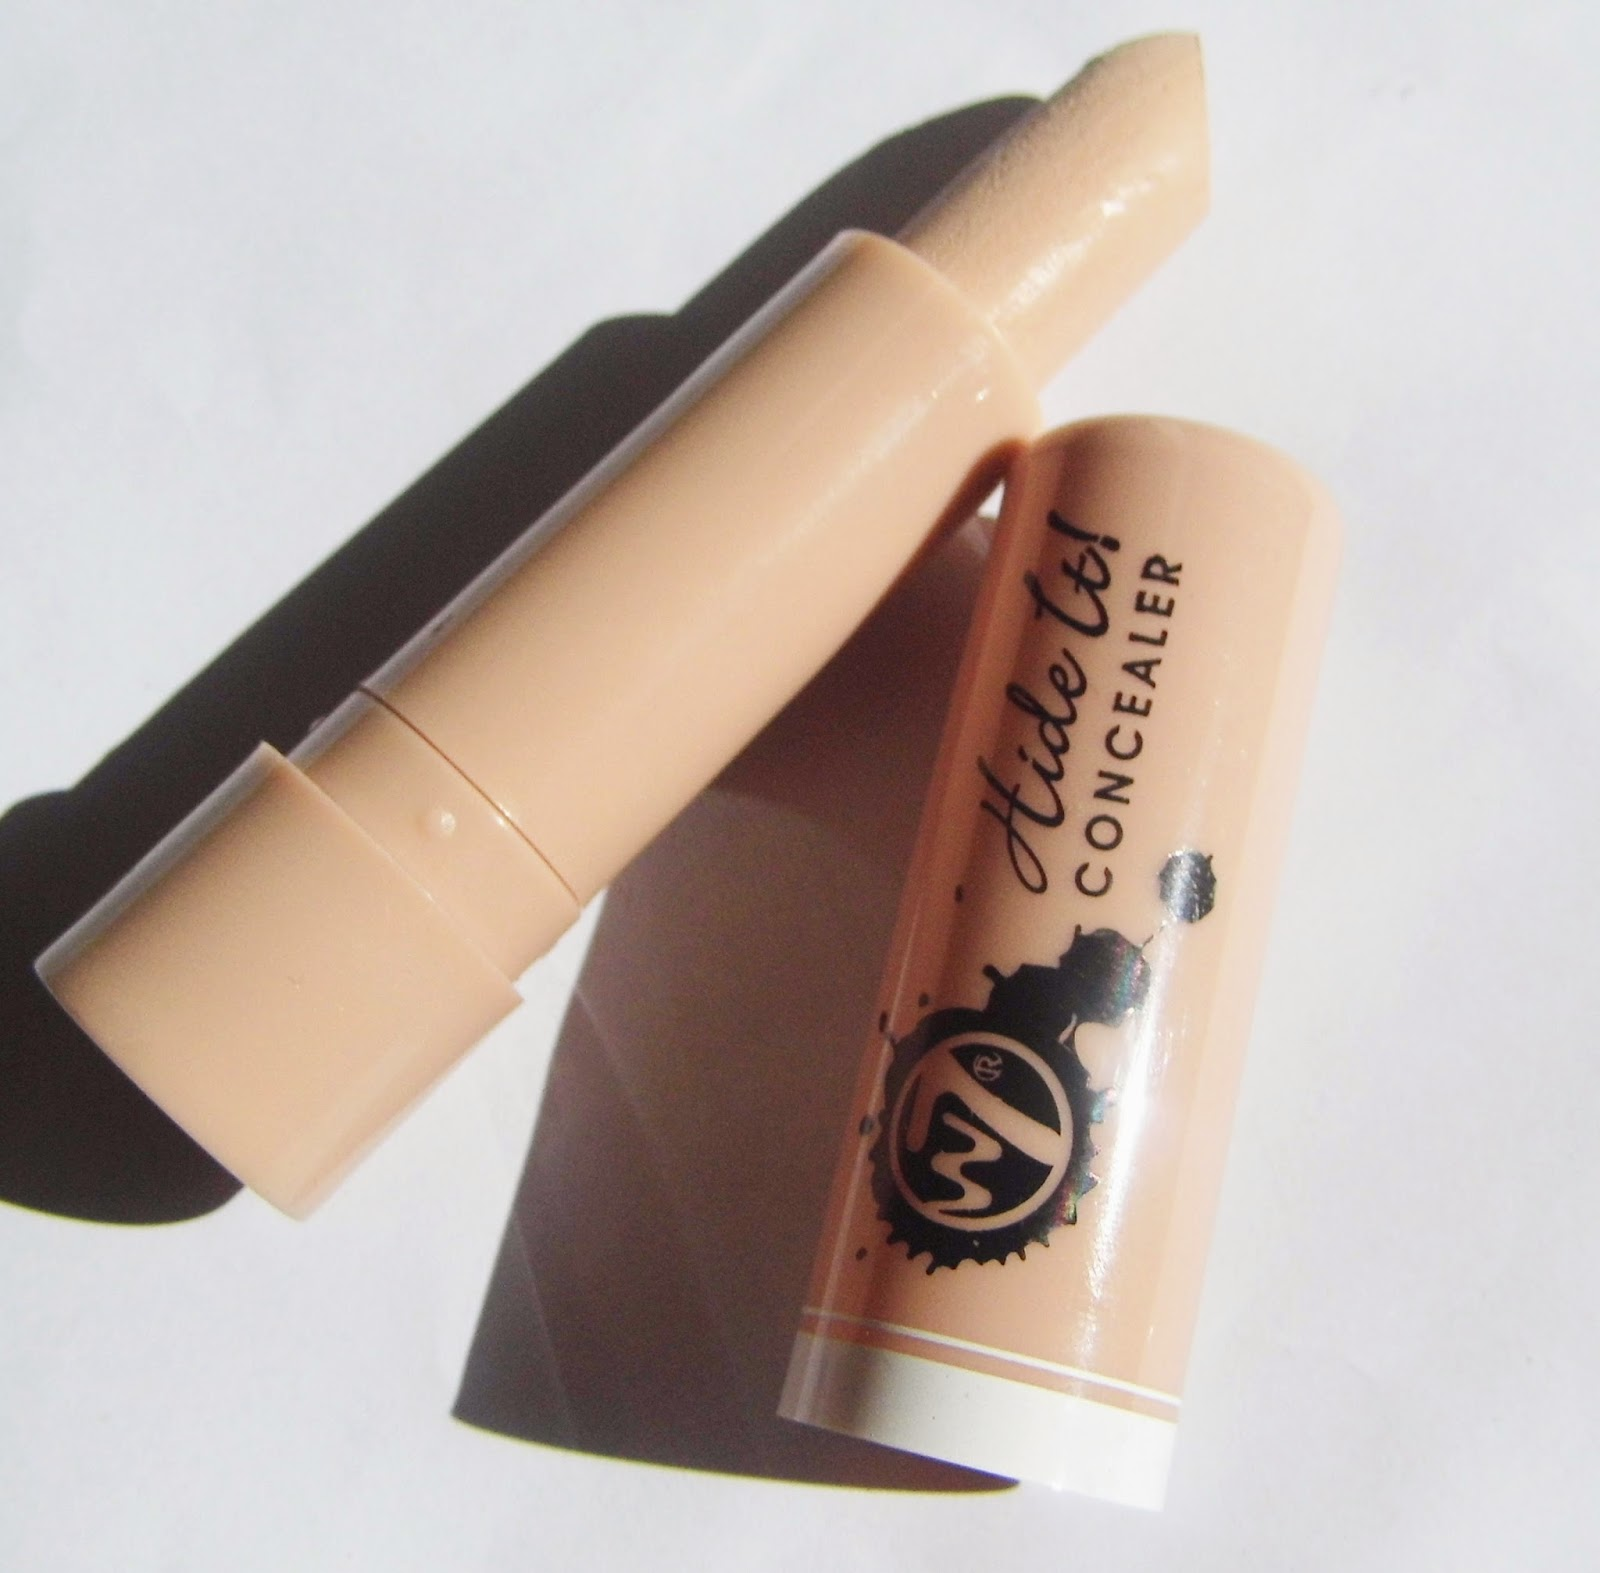 w7-cosmetics-hide-it-concealer-picture